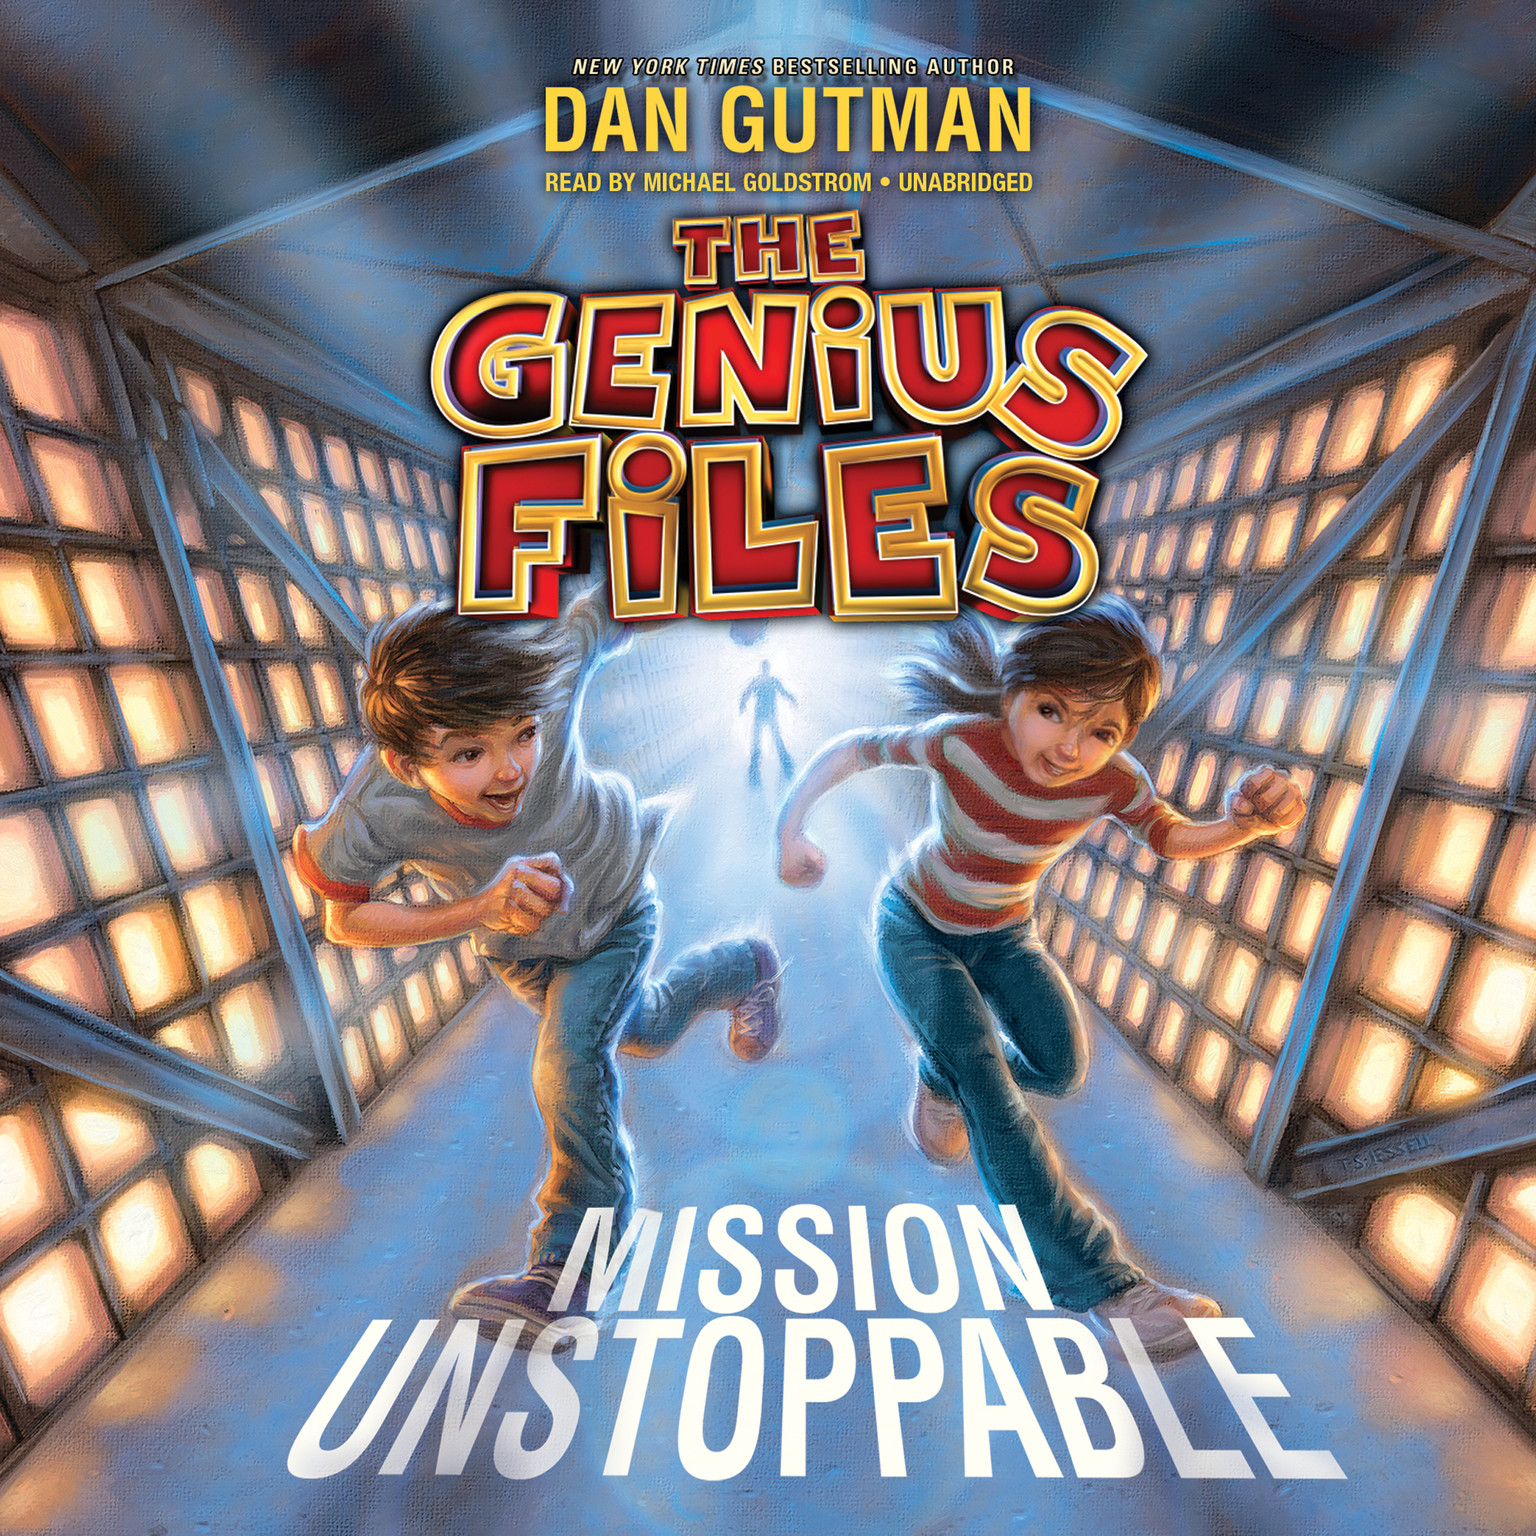 Printable Mission Unstoppable Audiobook Cover Art